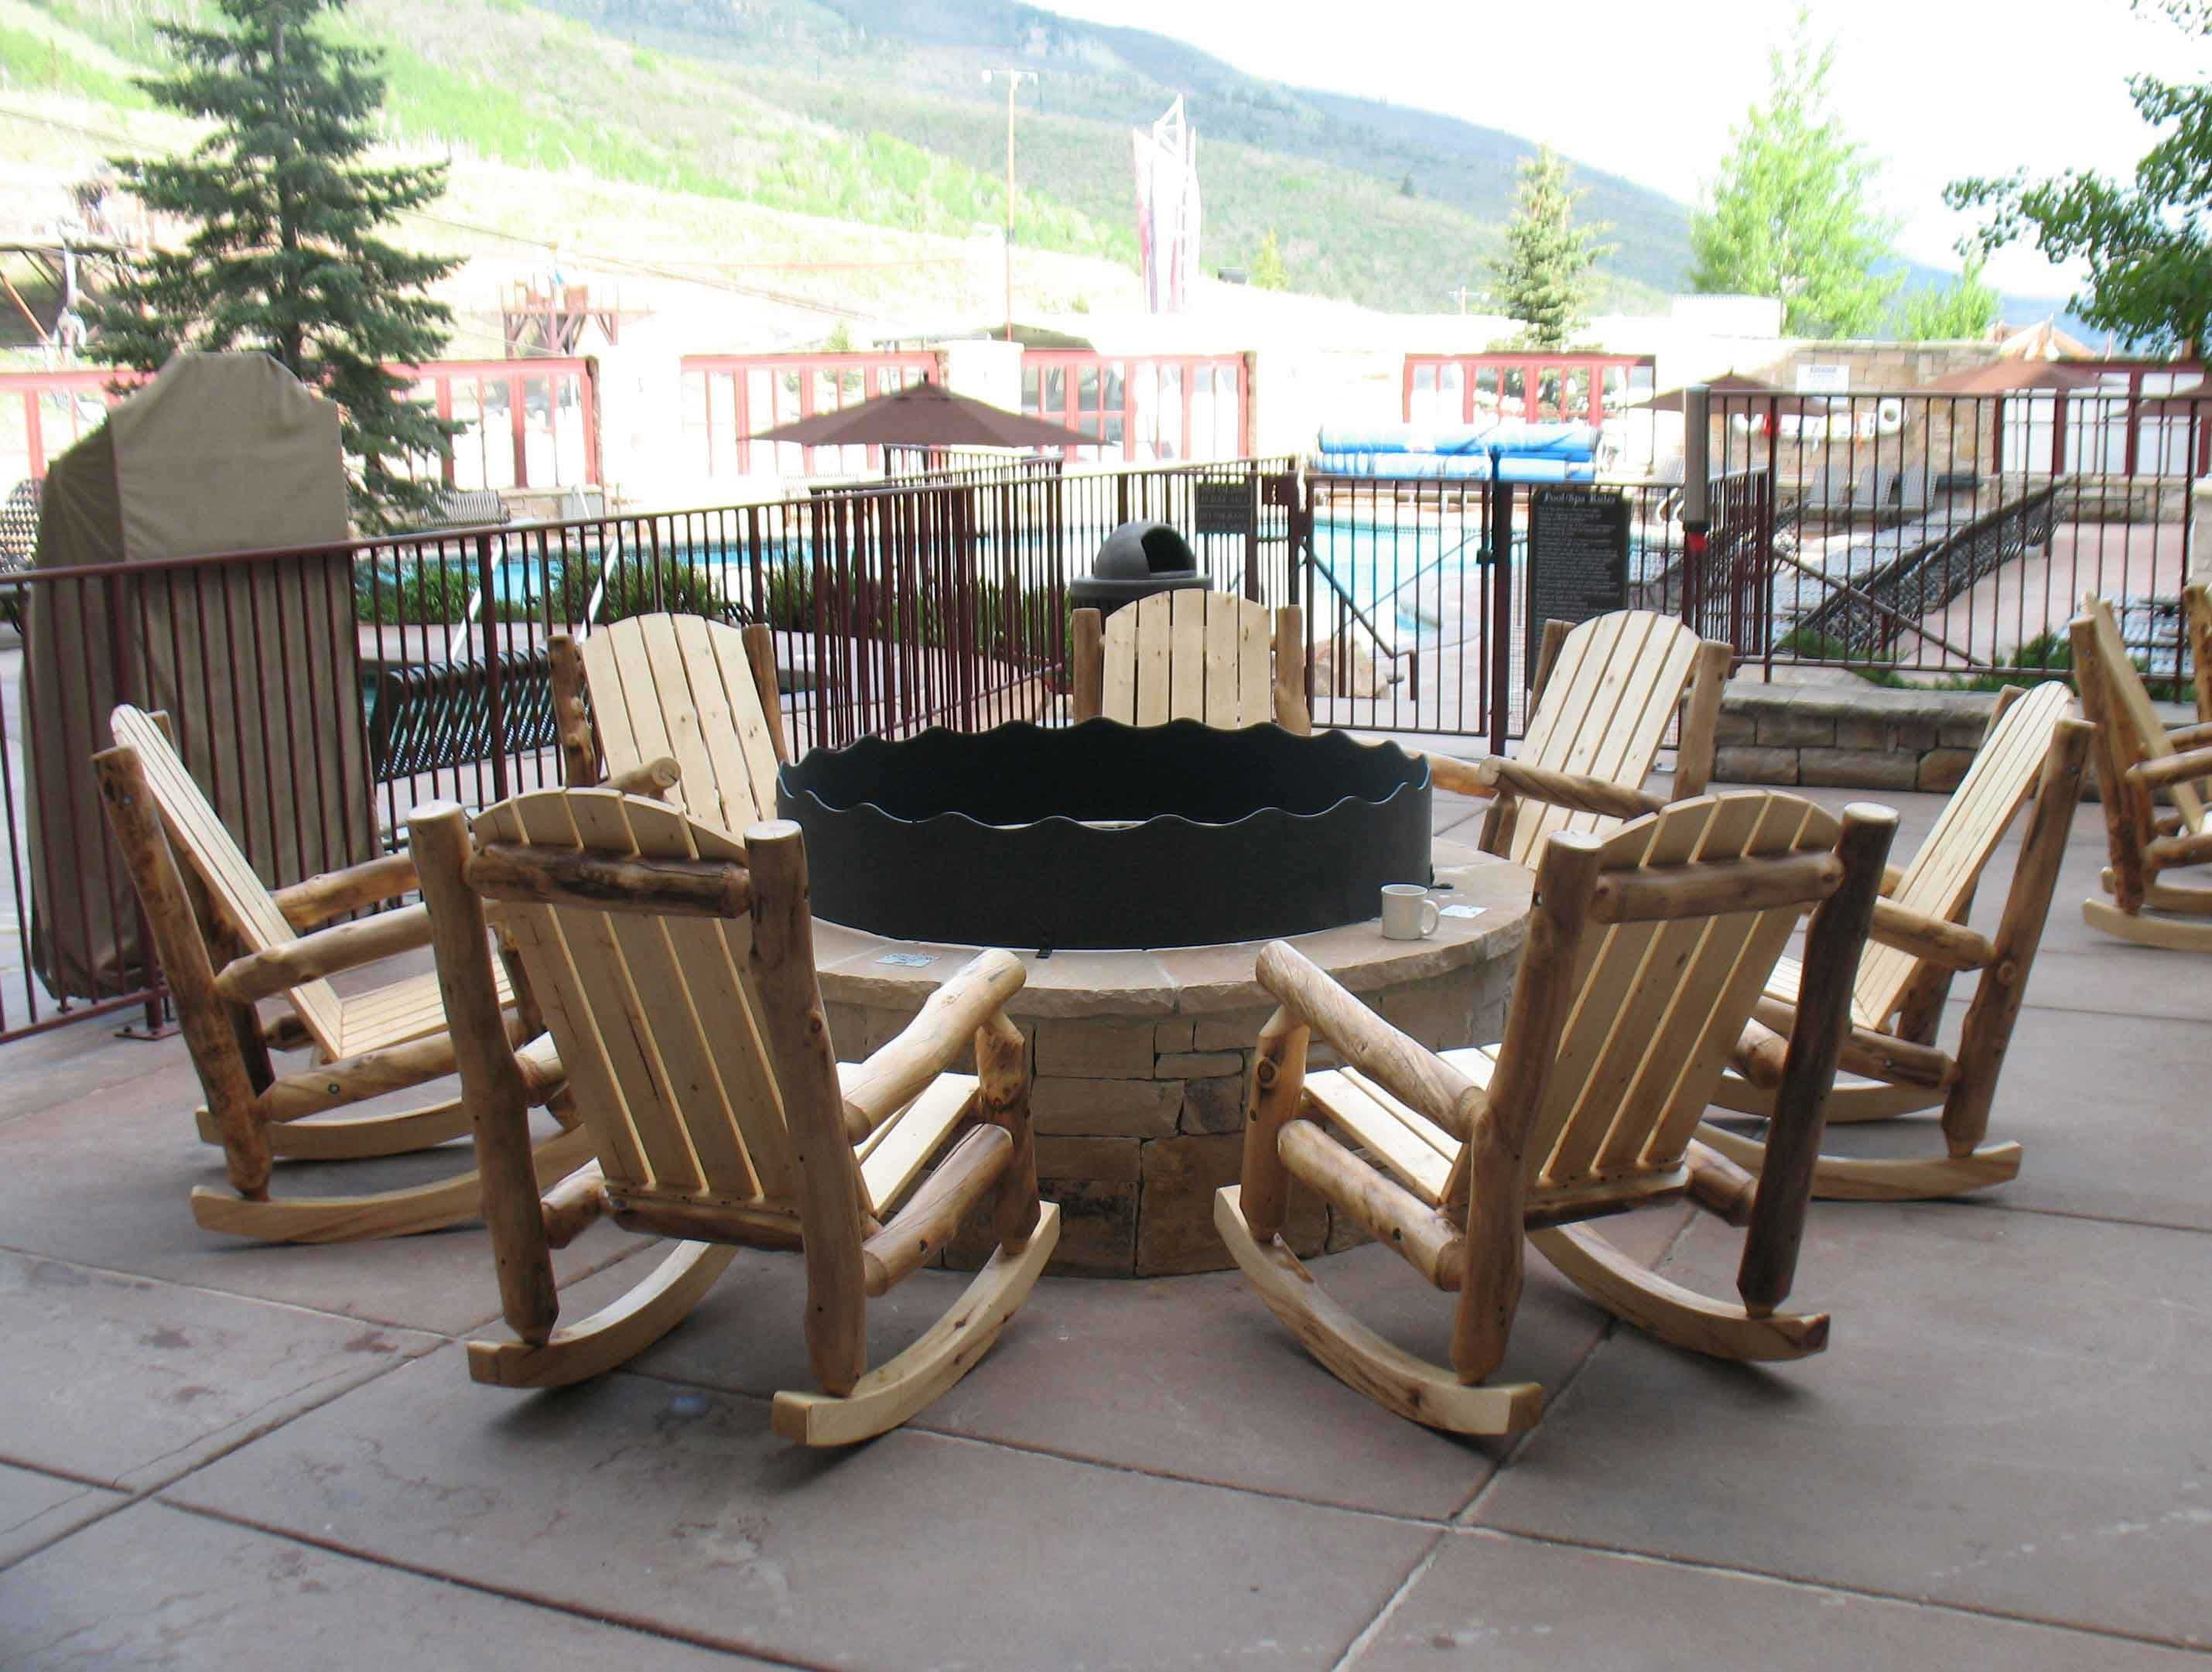 Aspen Log Outdoor Rocking Chair | Rustic Log Furniture Of Utah Pertaining To Unique Outdoor Rocking Chairs (#1 of 15)